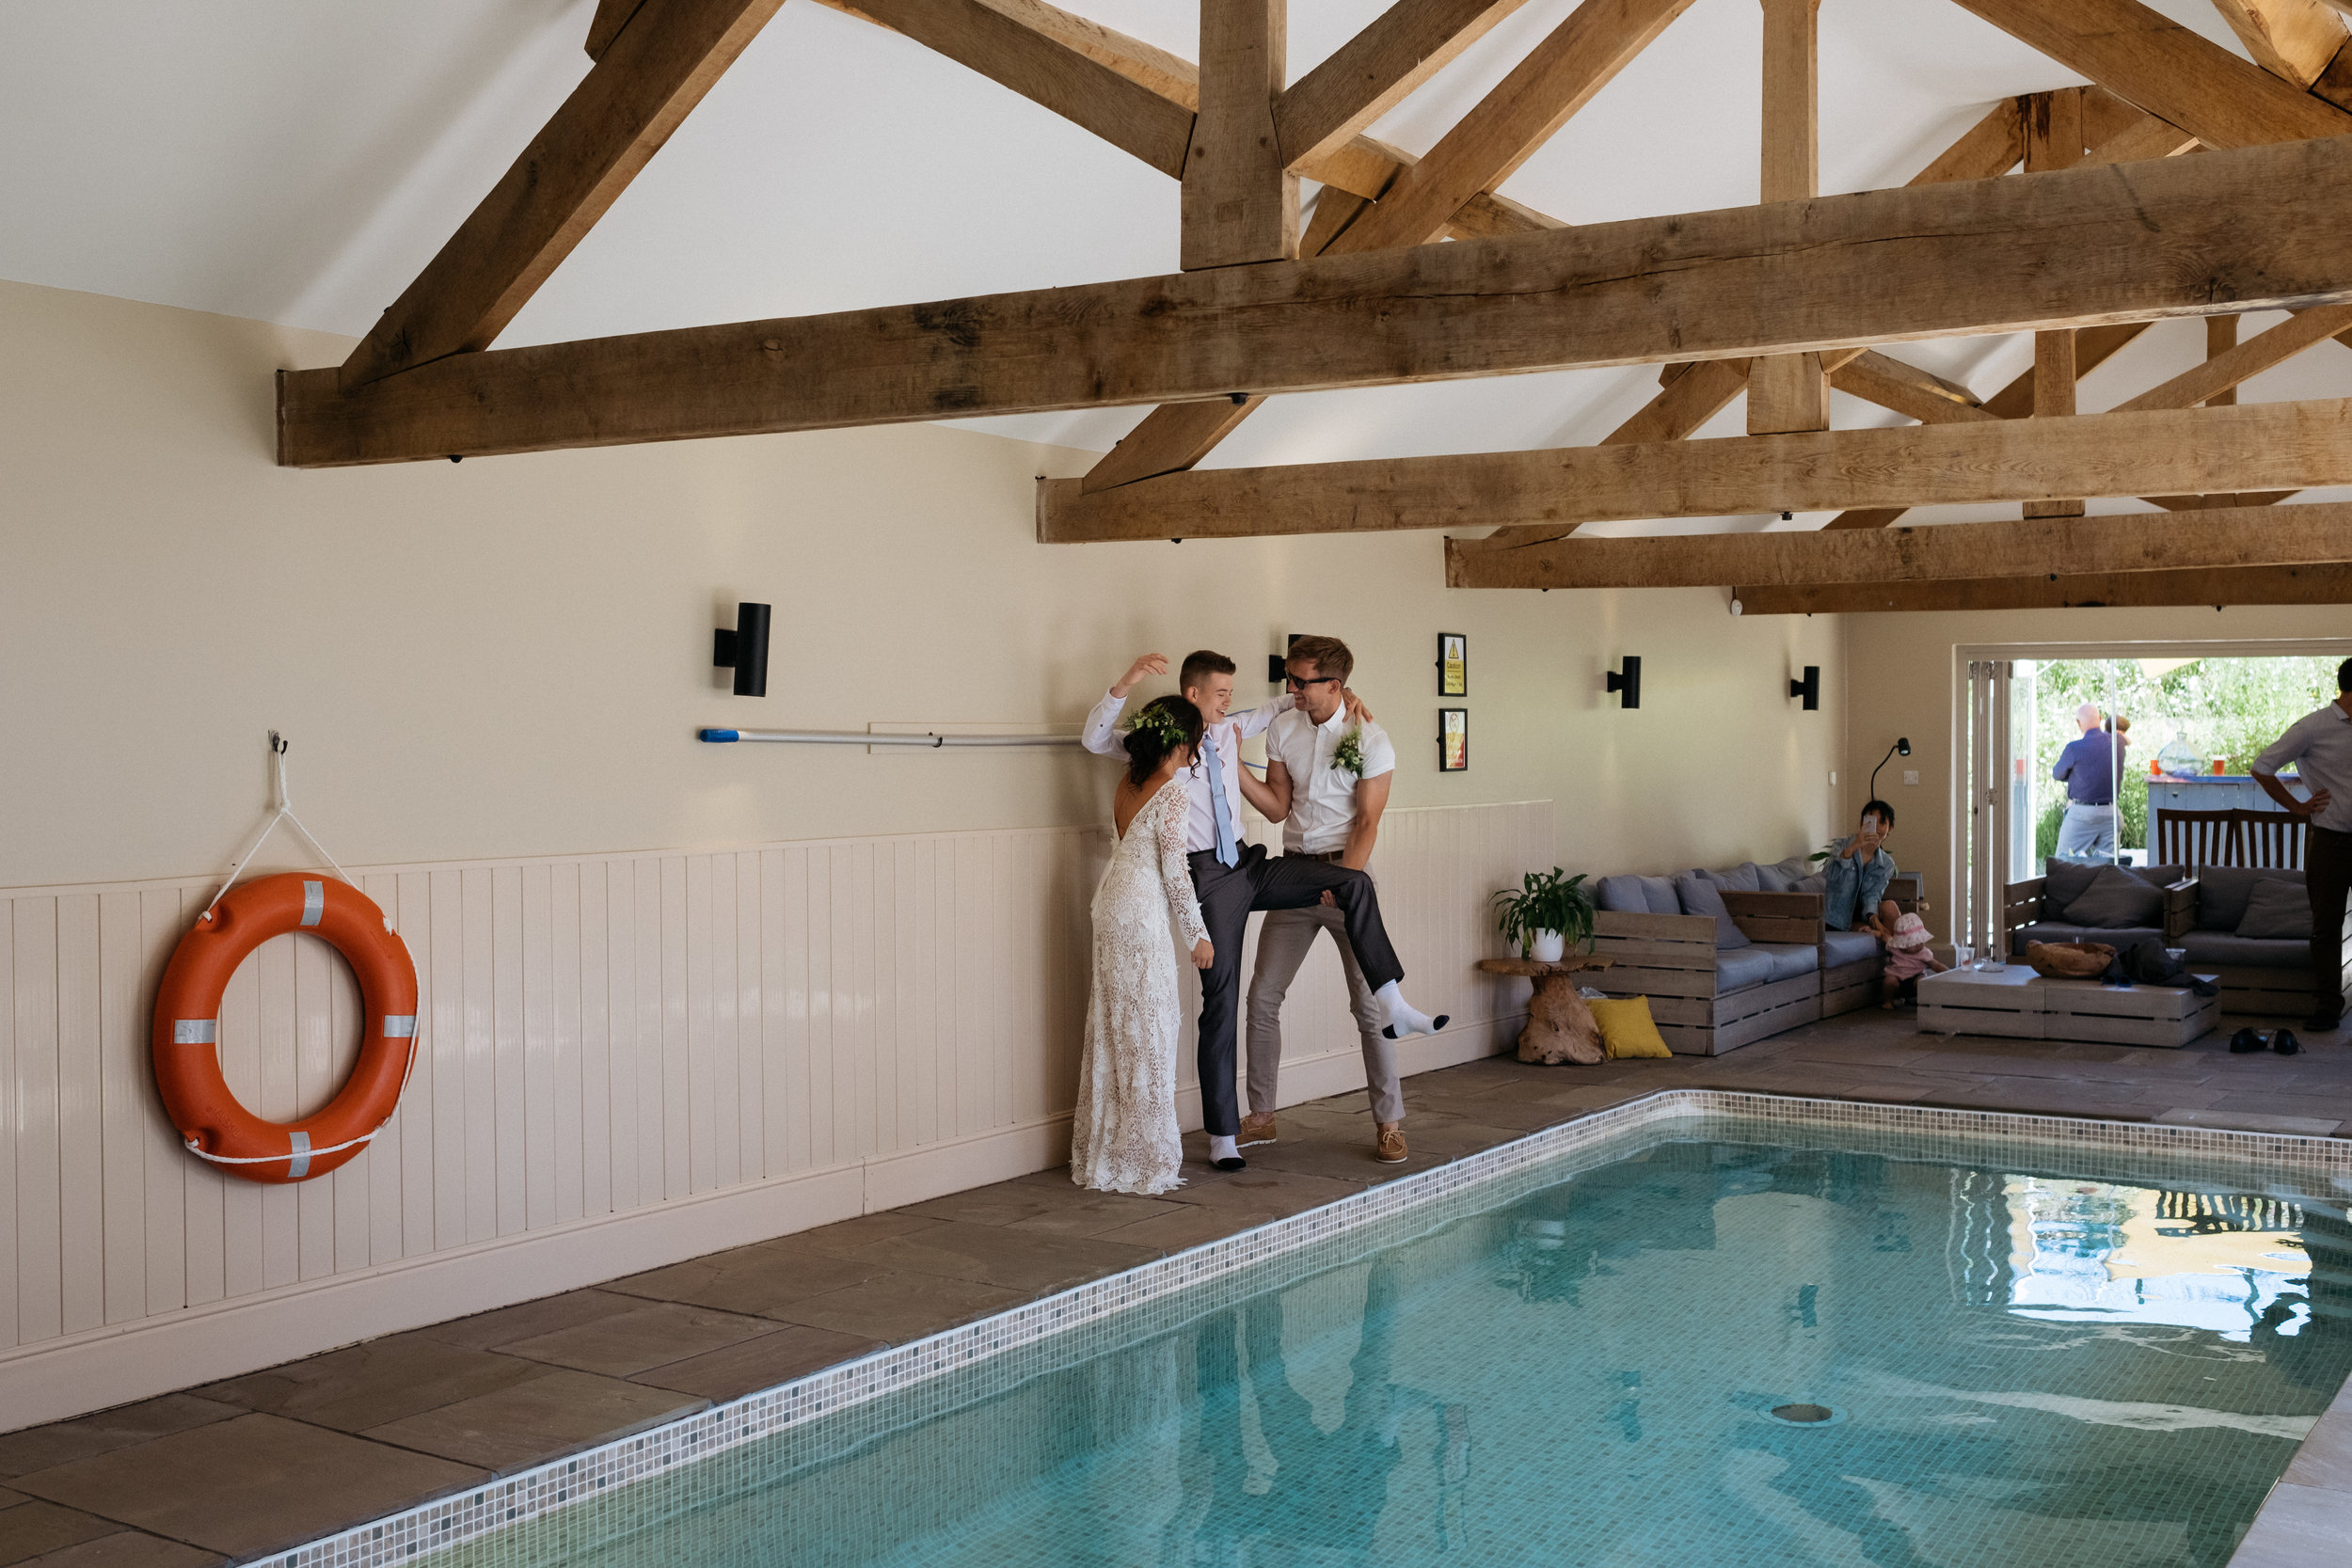 Bride and groom throw guest into swimming pool